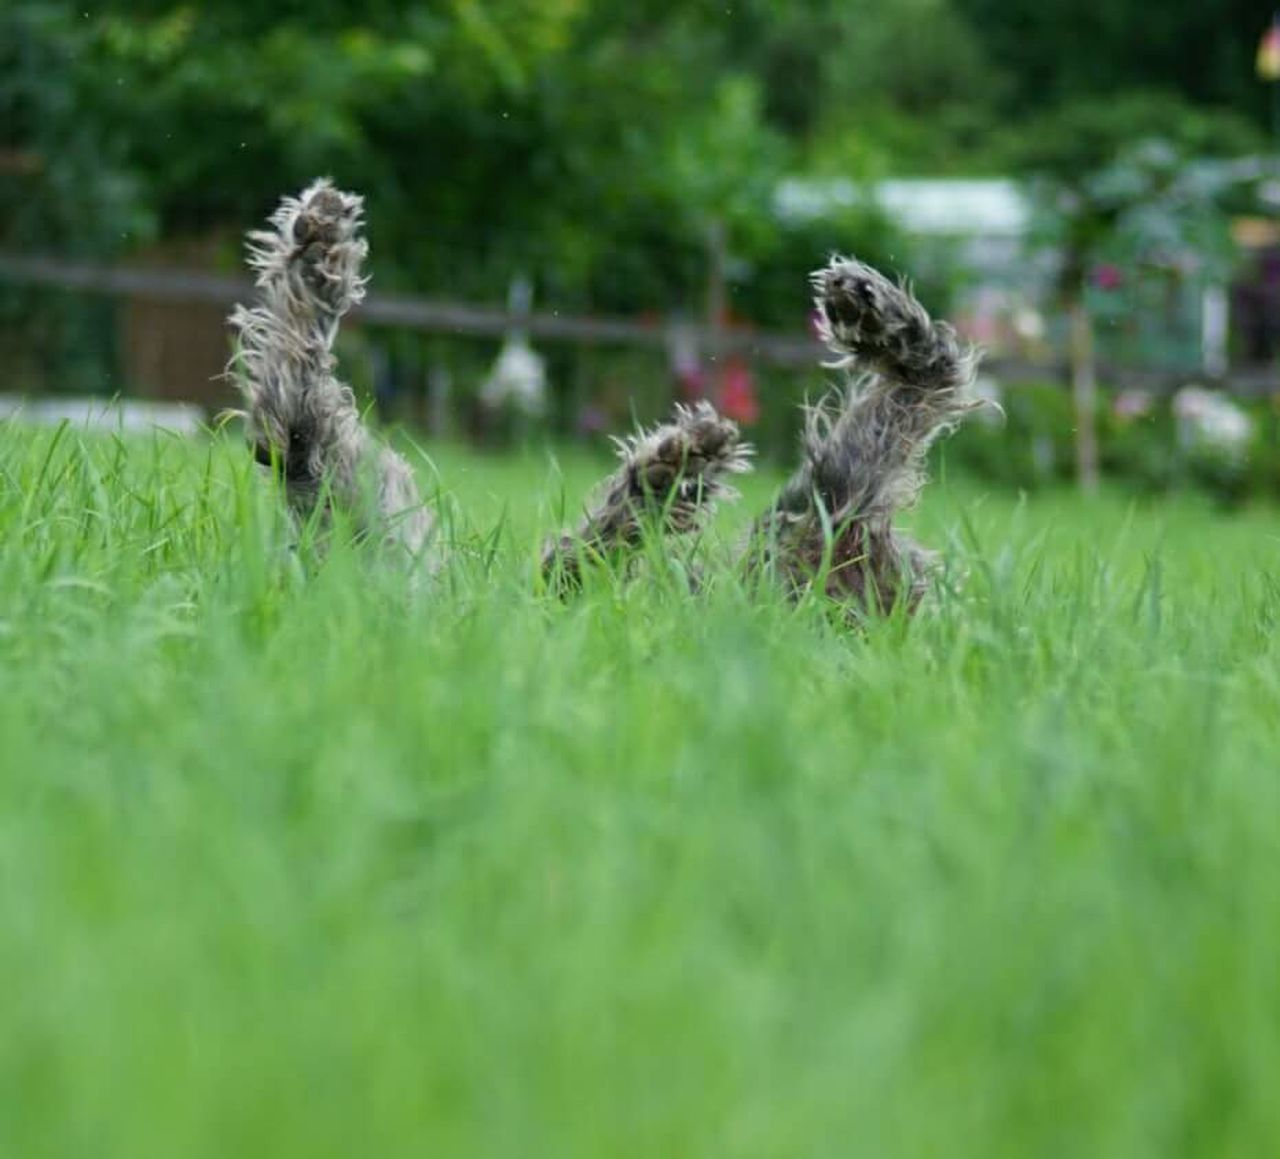 grass, no people, animal themes, outdoors, dog, day, competition, mammal, pets, nature, domestic animals